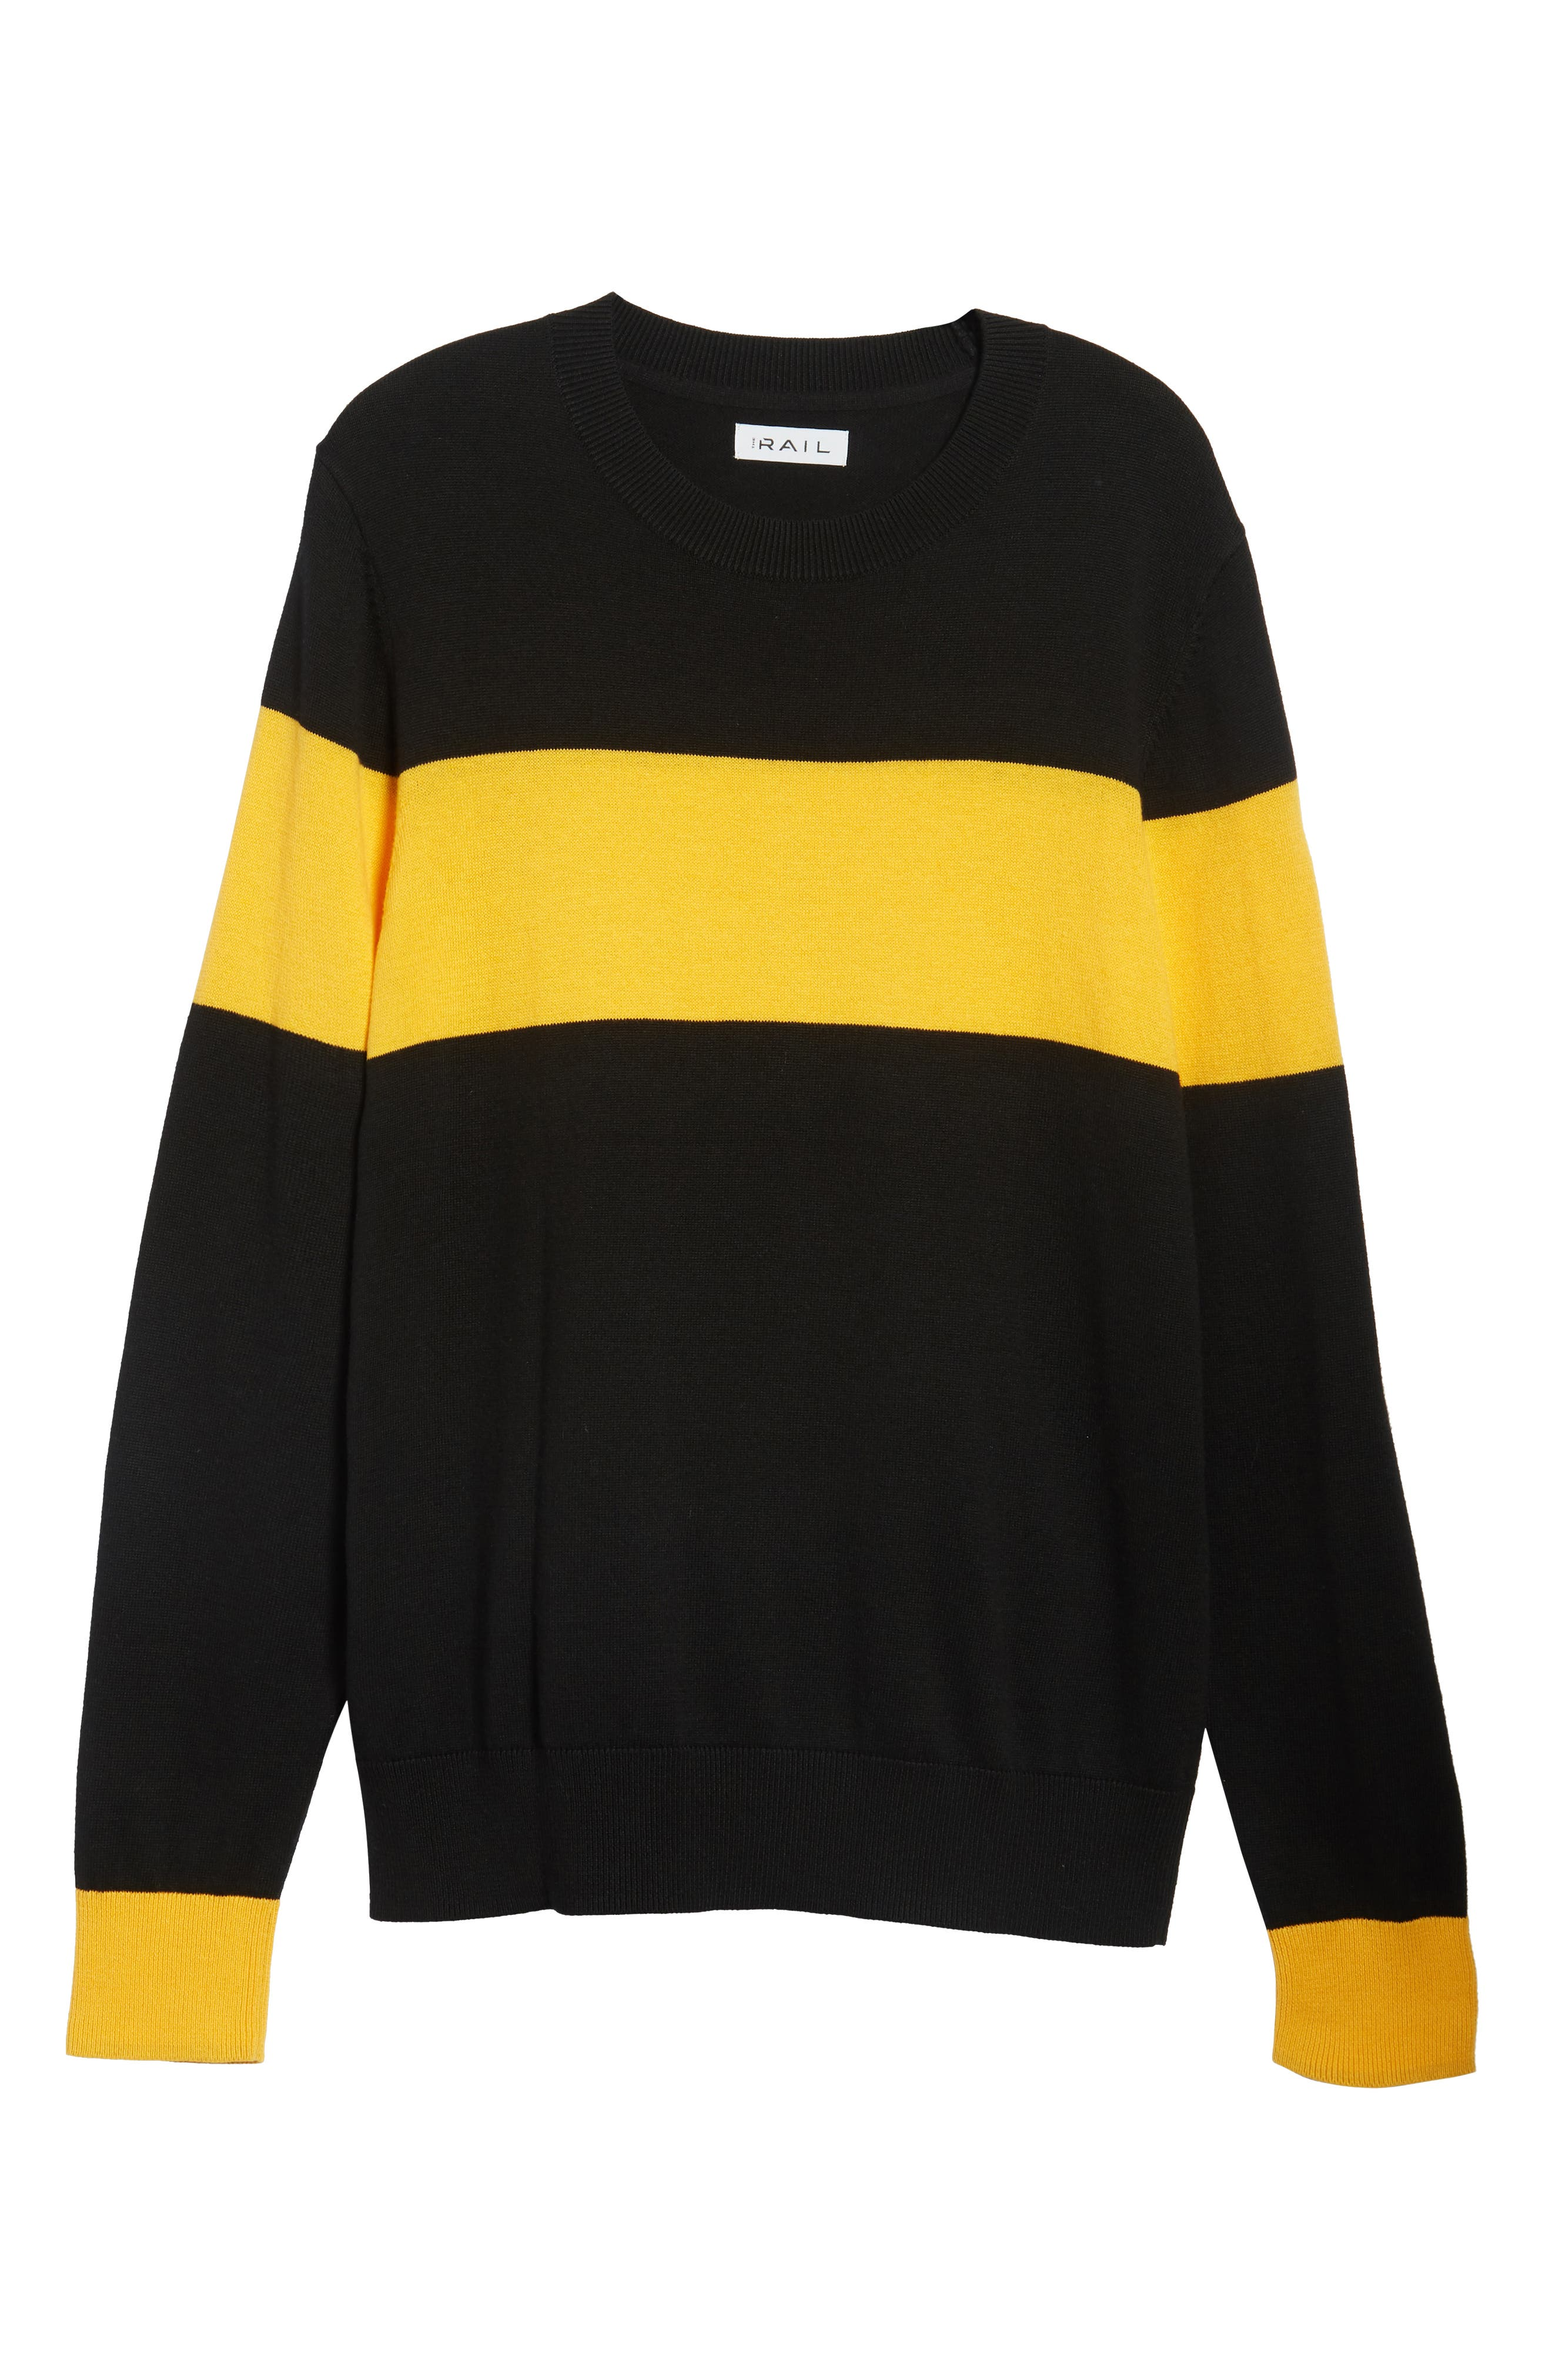 Rugby Stripe Sweater,                             Alternate thumbnail 6, color,                             BLACK YELLOW RUGBY STRIPE